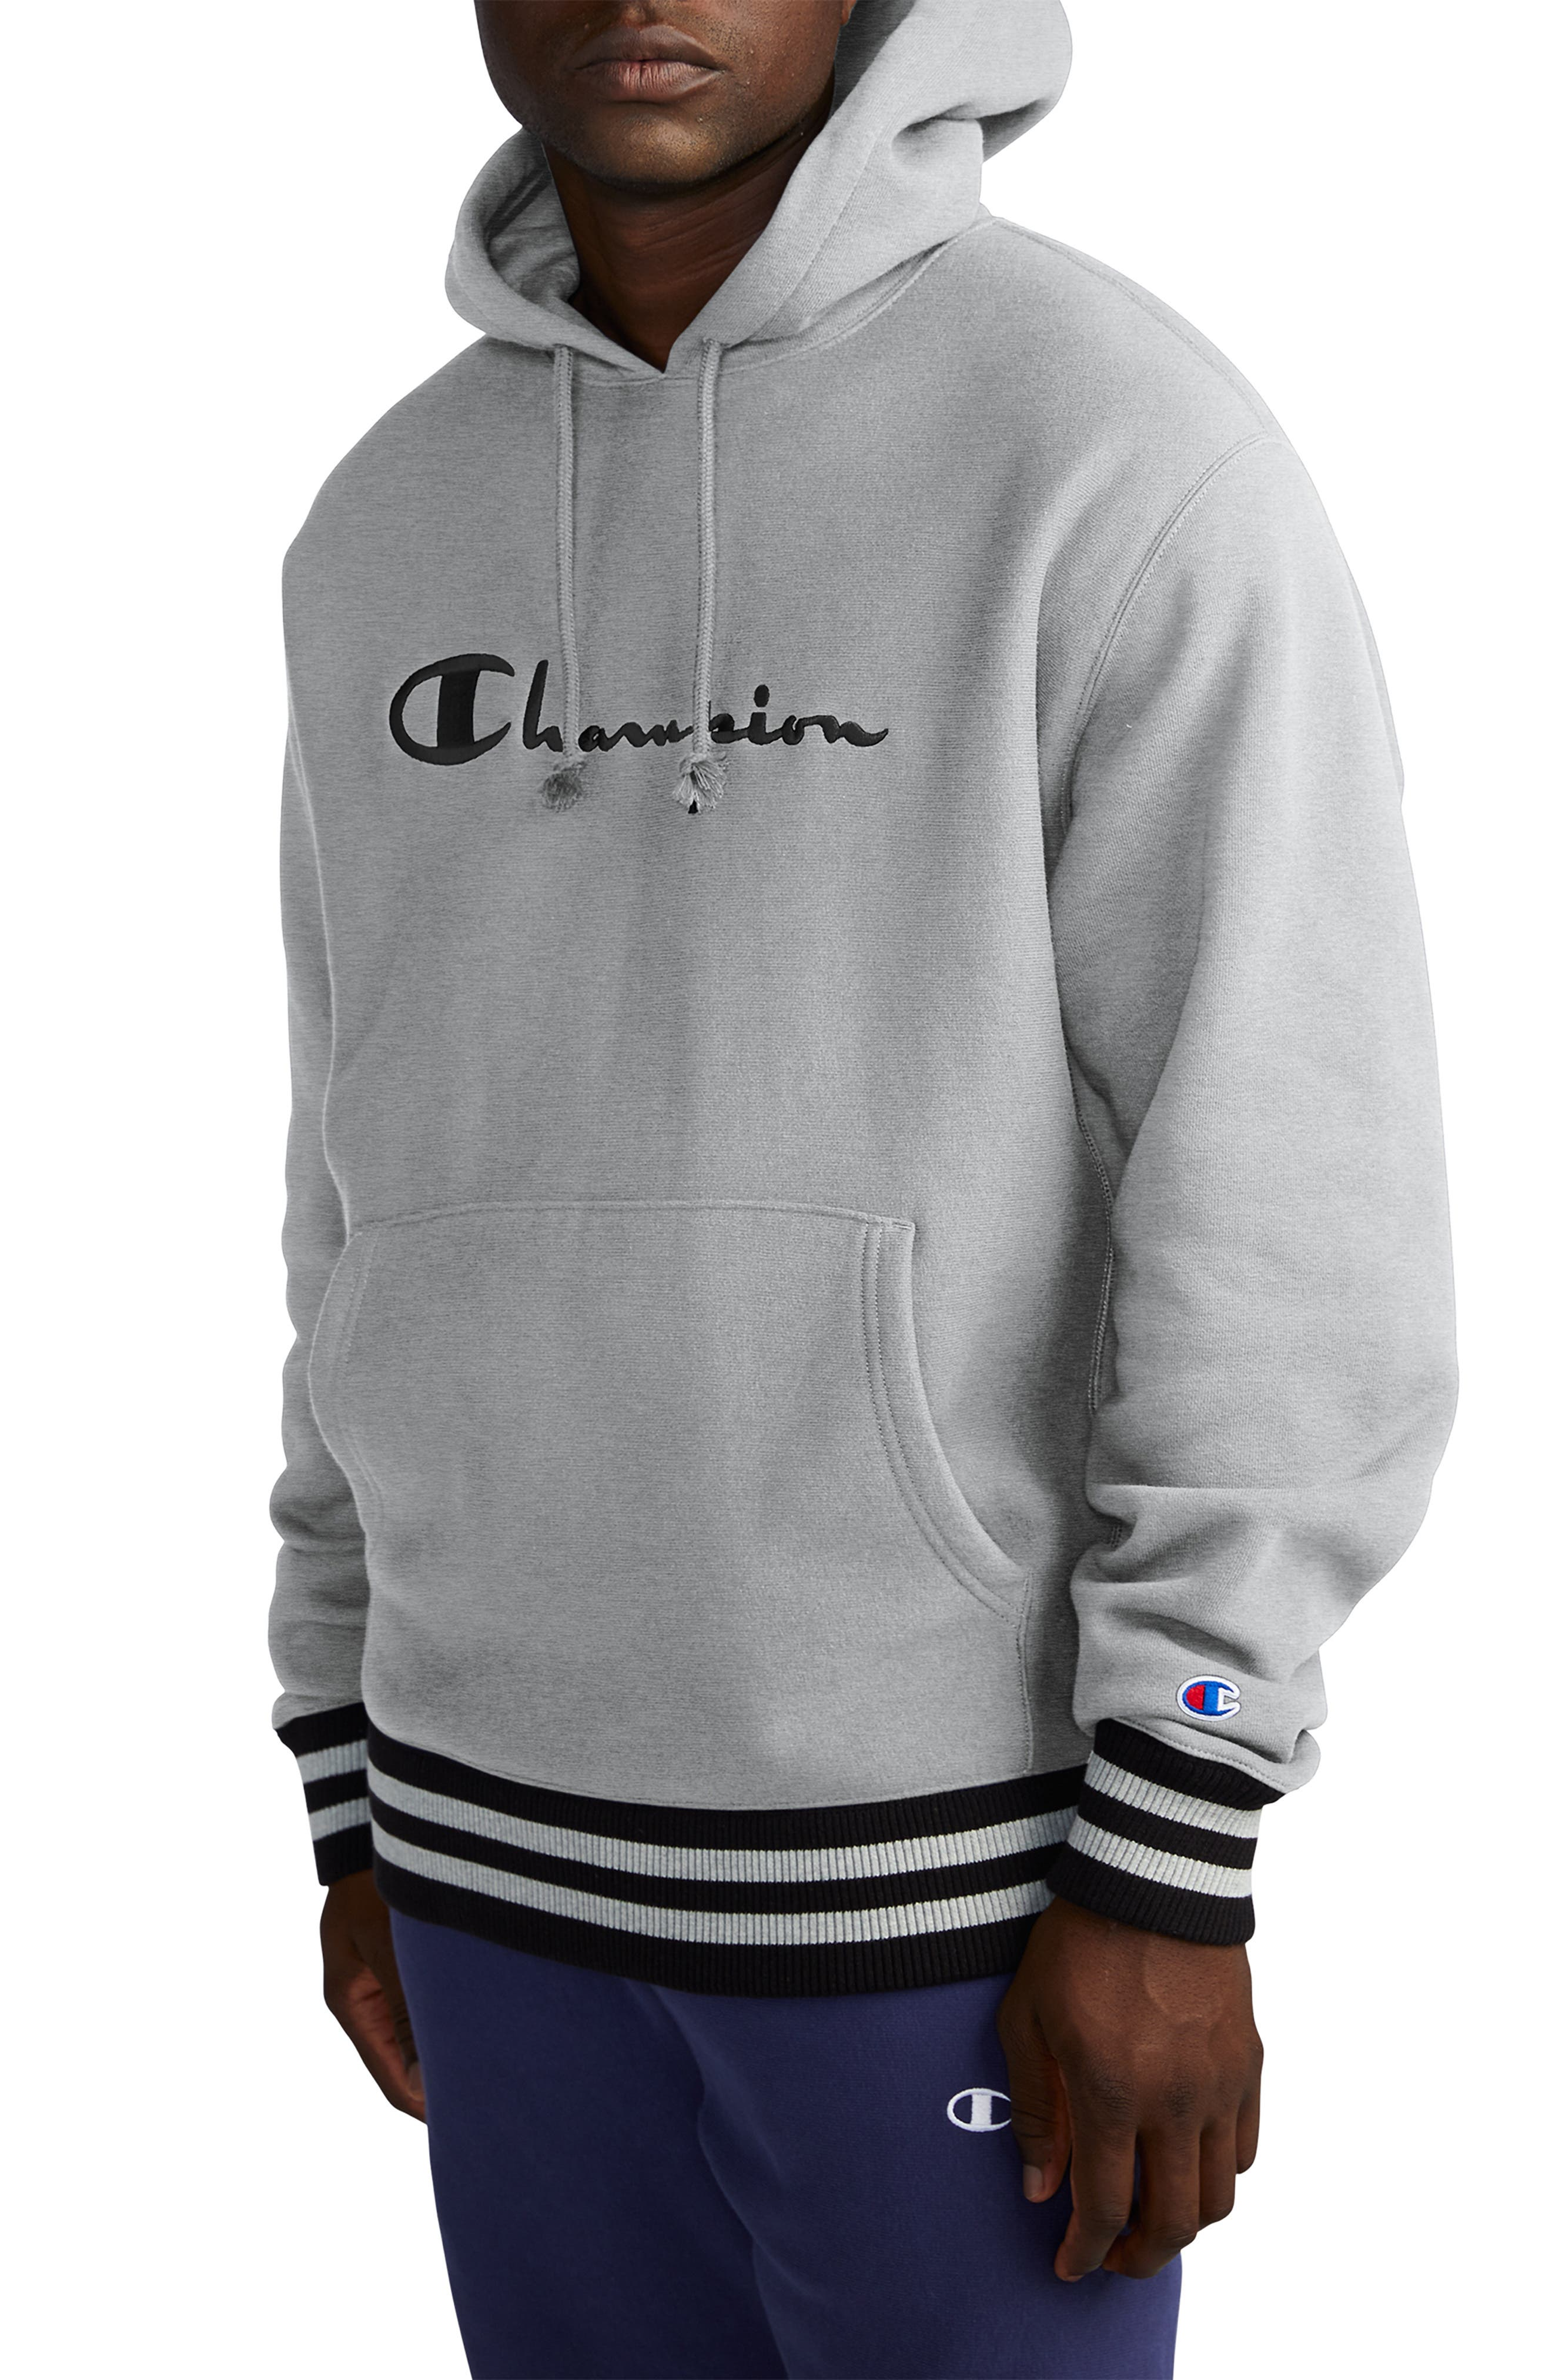 CHAMPION, Embroidered Logo Hooded Sweatshirt, Main thumbnail 1, color, OXFORD GREY/ BLACK